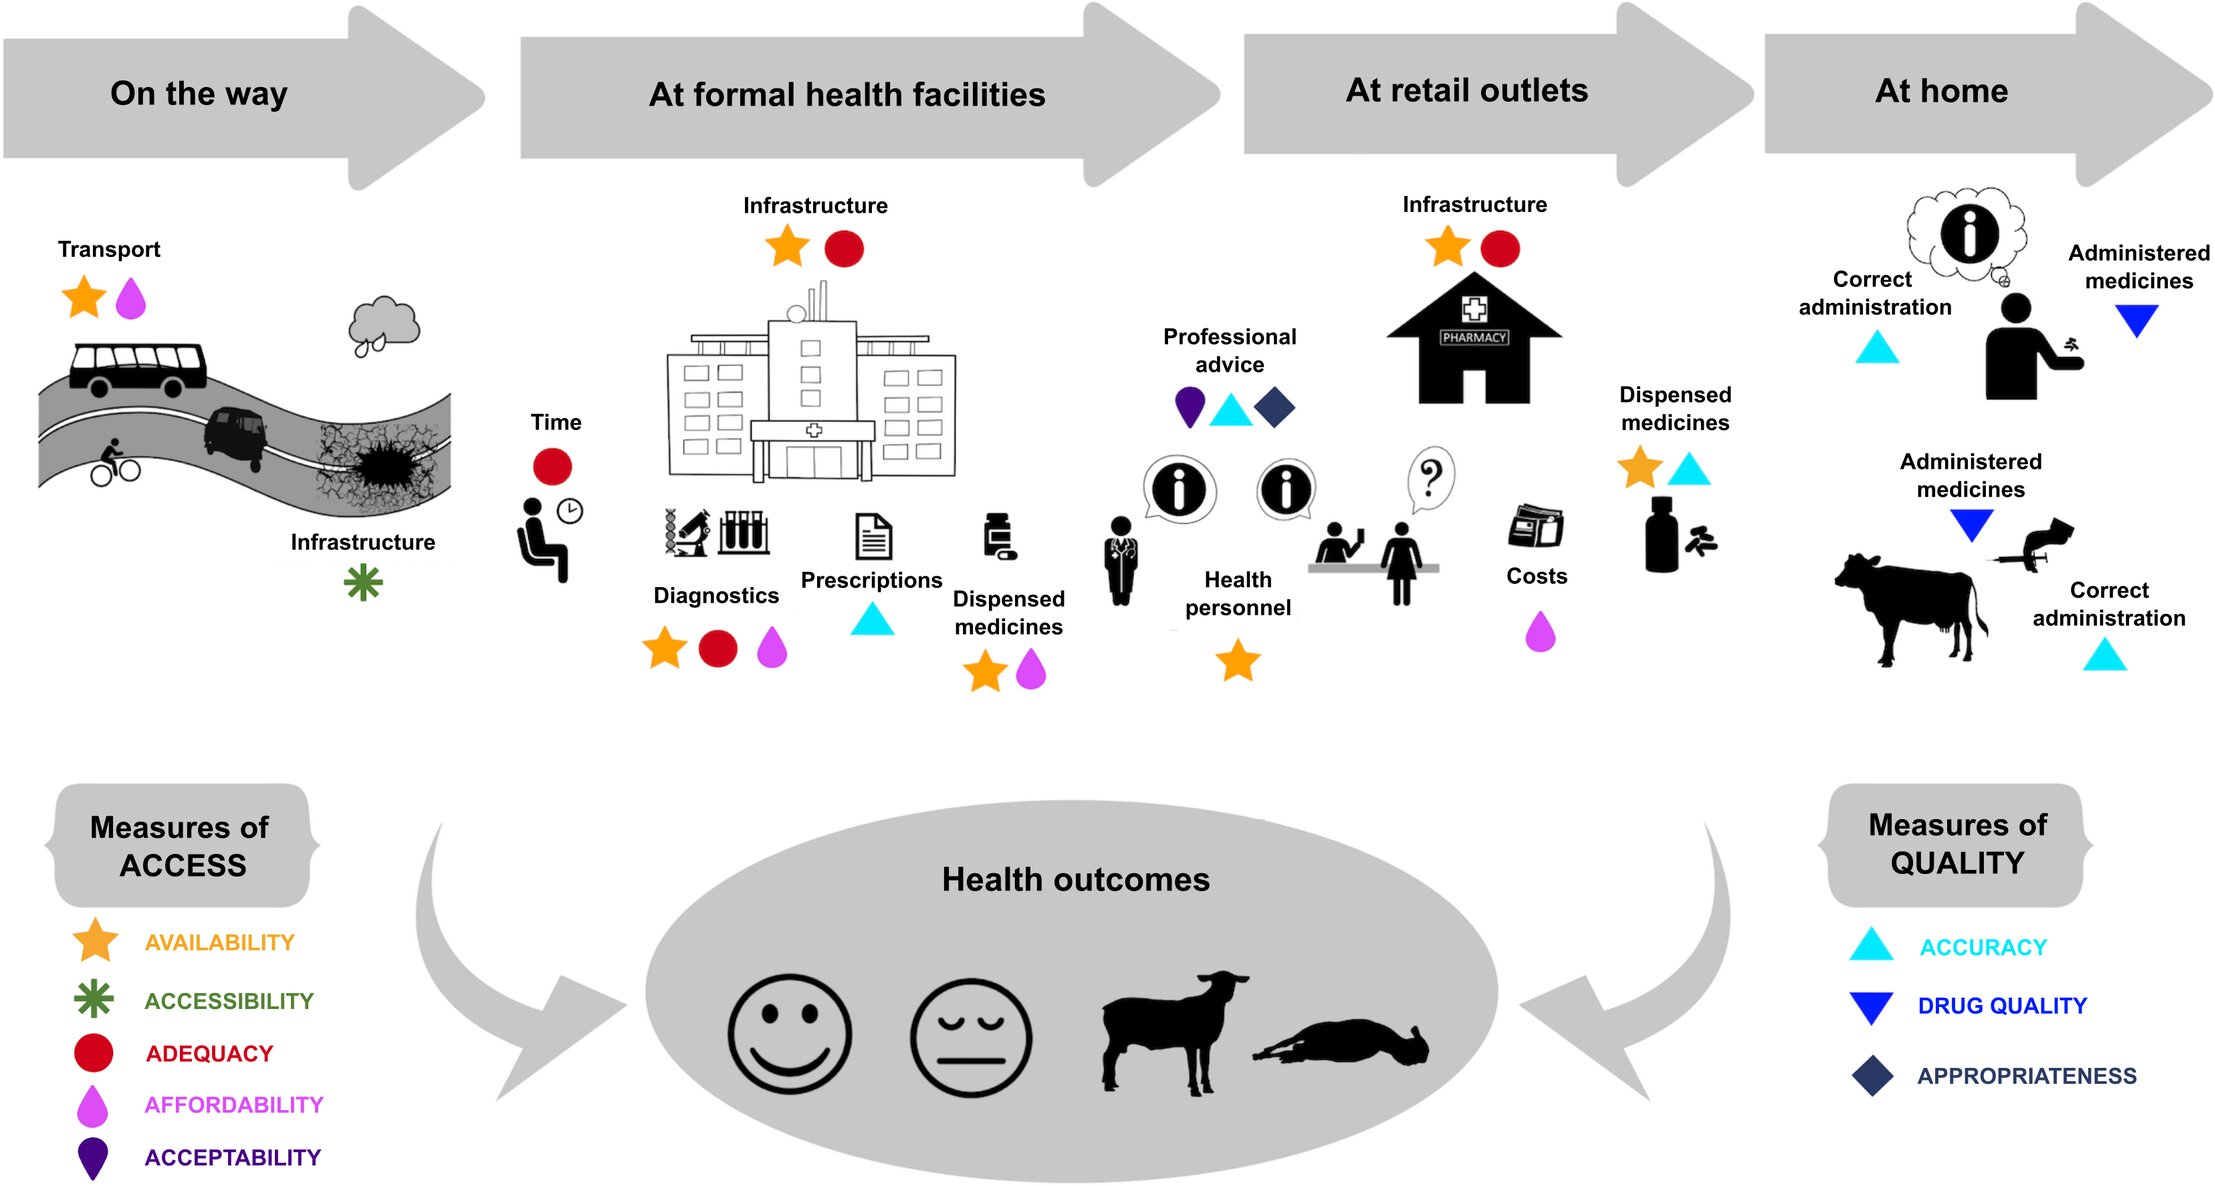 medicalxpress.com - Science X staff - Better access to quality health care could curb antimicrobial resistance in East Africa